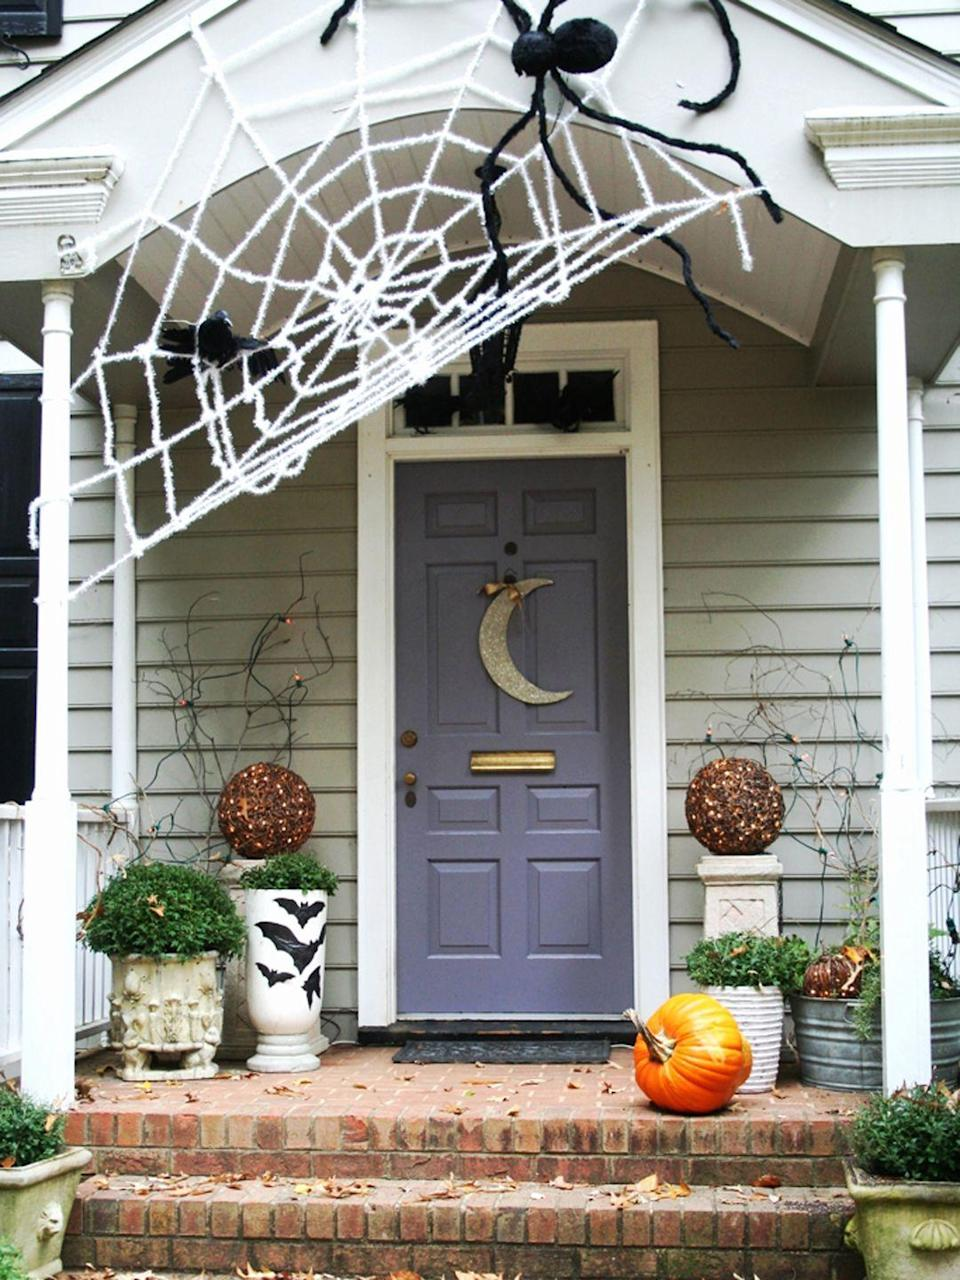 """<p>Craft an oversize spiderweb above your front porch with <a href=""""http://www.instructables.com/id/Gigantic-Halloween-Spider-Web/"""" rel=""""nofollow noopener"""" target=""""_blank"""" data-ylk=""""slk:clothesline style rope"""" class=""""link rapid-noclick-resp"""">clothesline style rope</a> or by simply tying together strands of white Christmas tinsel garland. Don't have great DIY skills? Buy a giant spiderweb for your home on Etsy. </p>"""